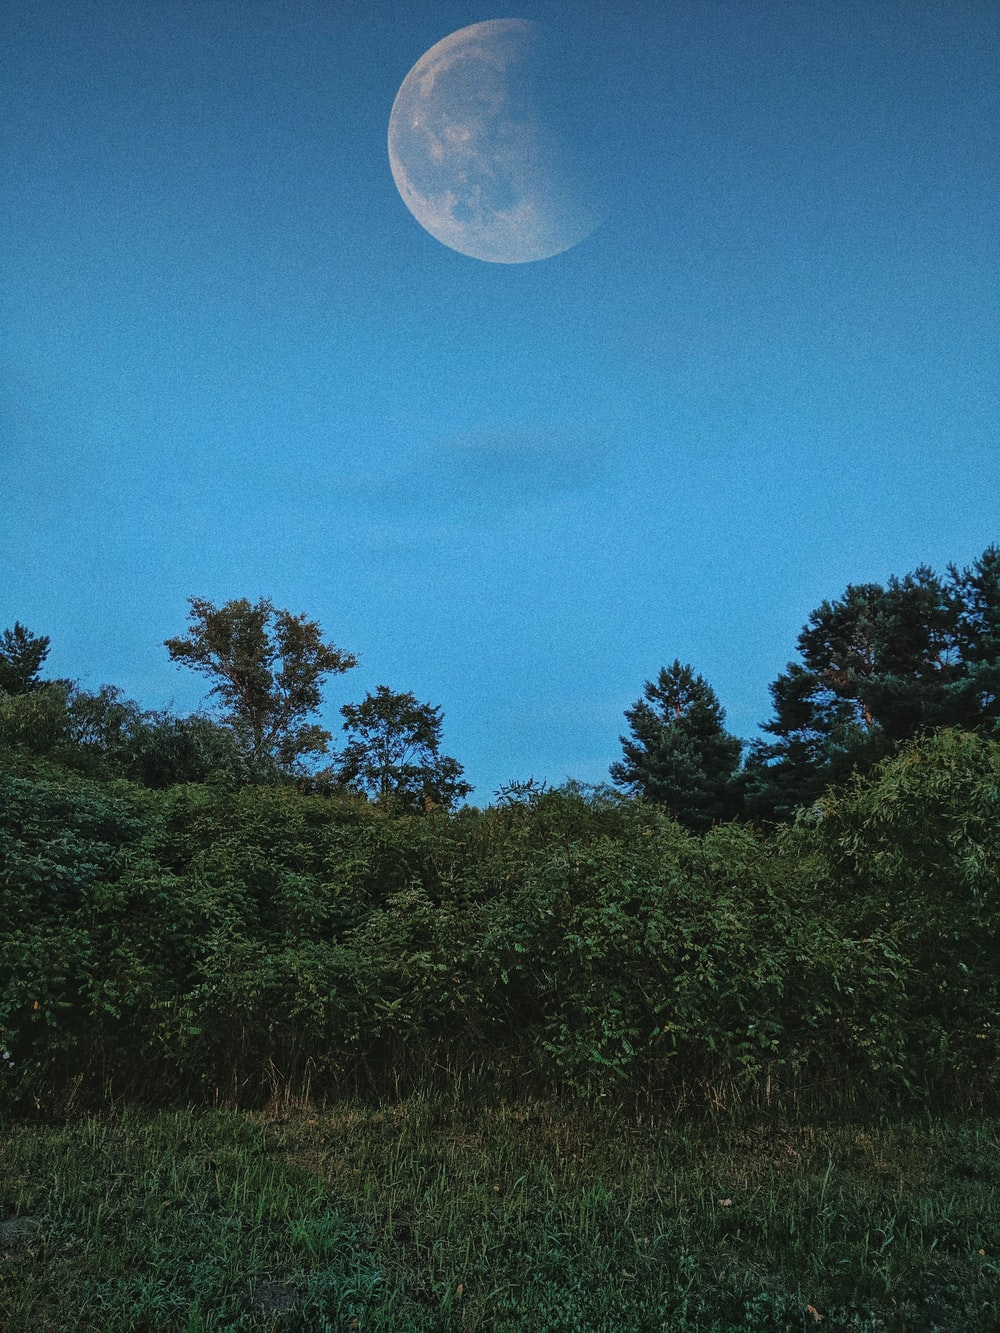 green field surrounded with tall and green trees showing full moon